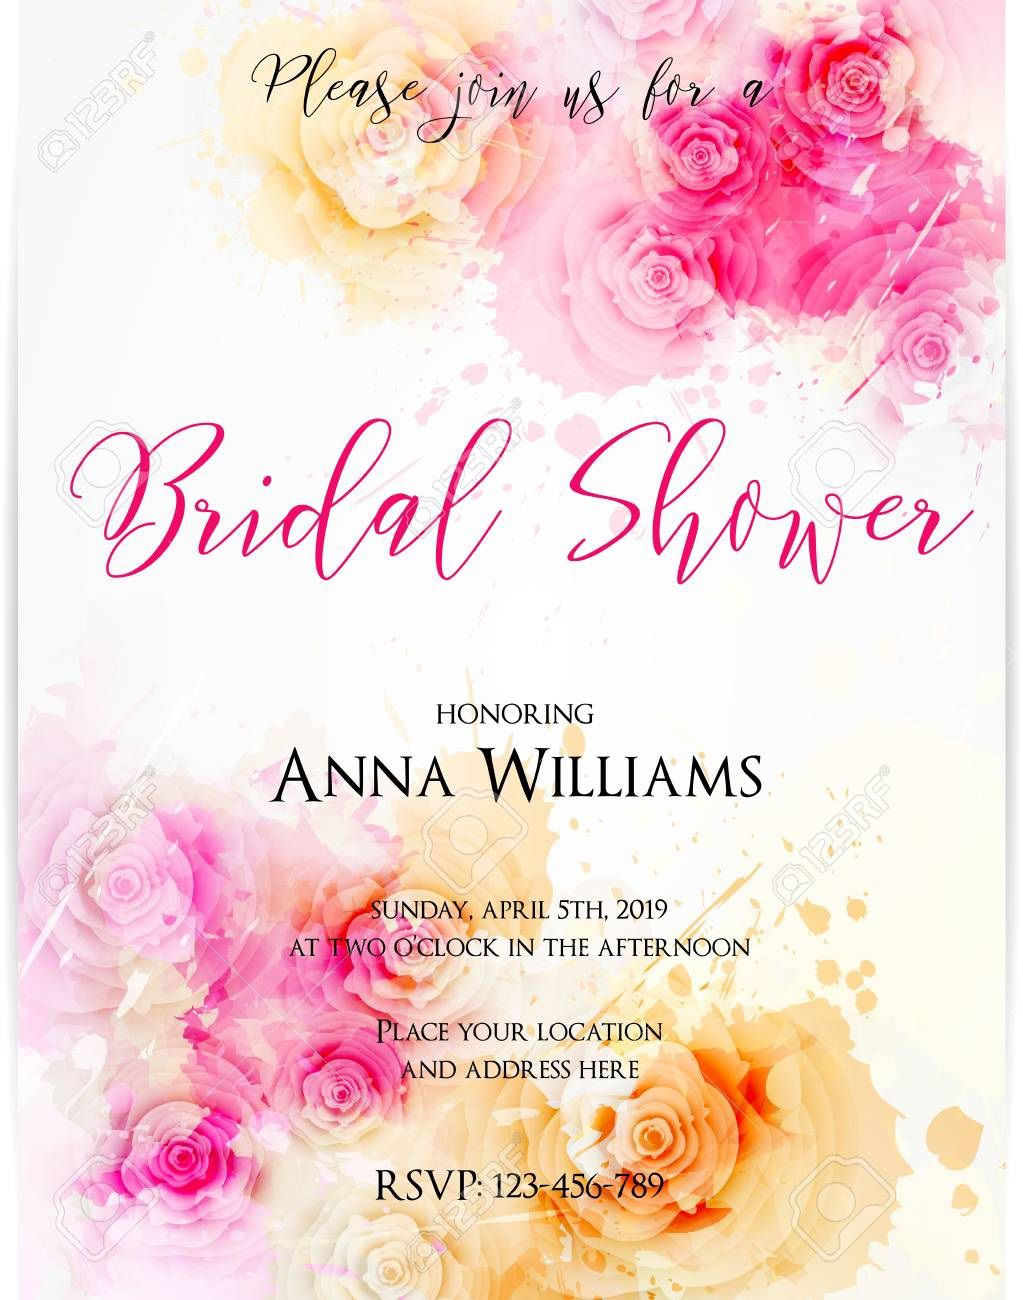 004 Excellent Wedding Shower Invitation Template Image  Templates Bridal Pinterest Microsoft Word Free ForFull